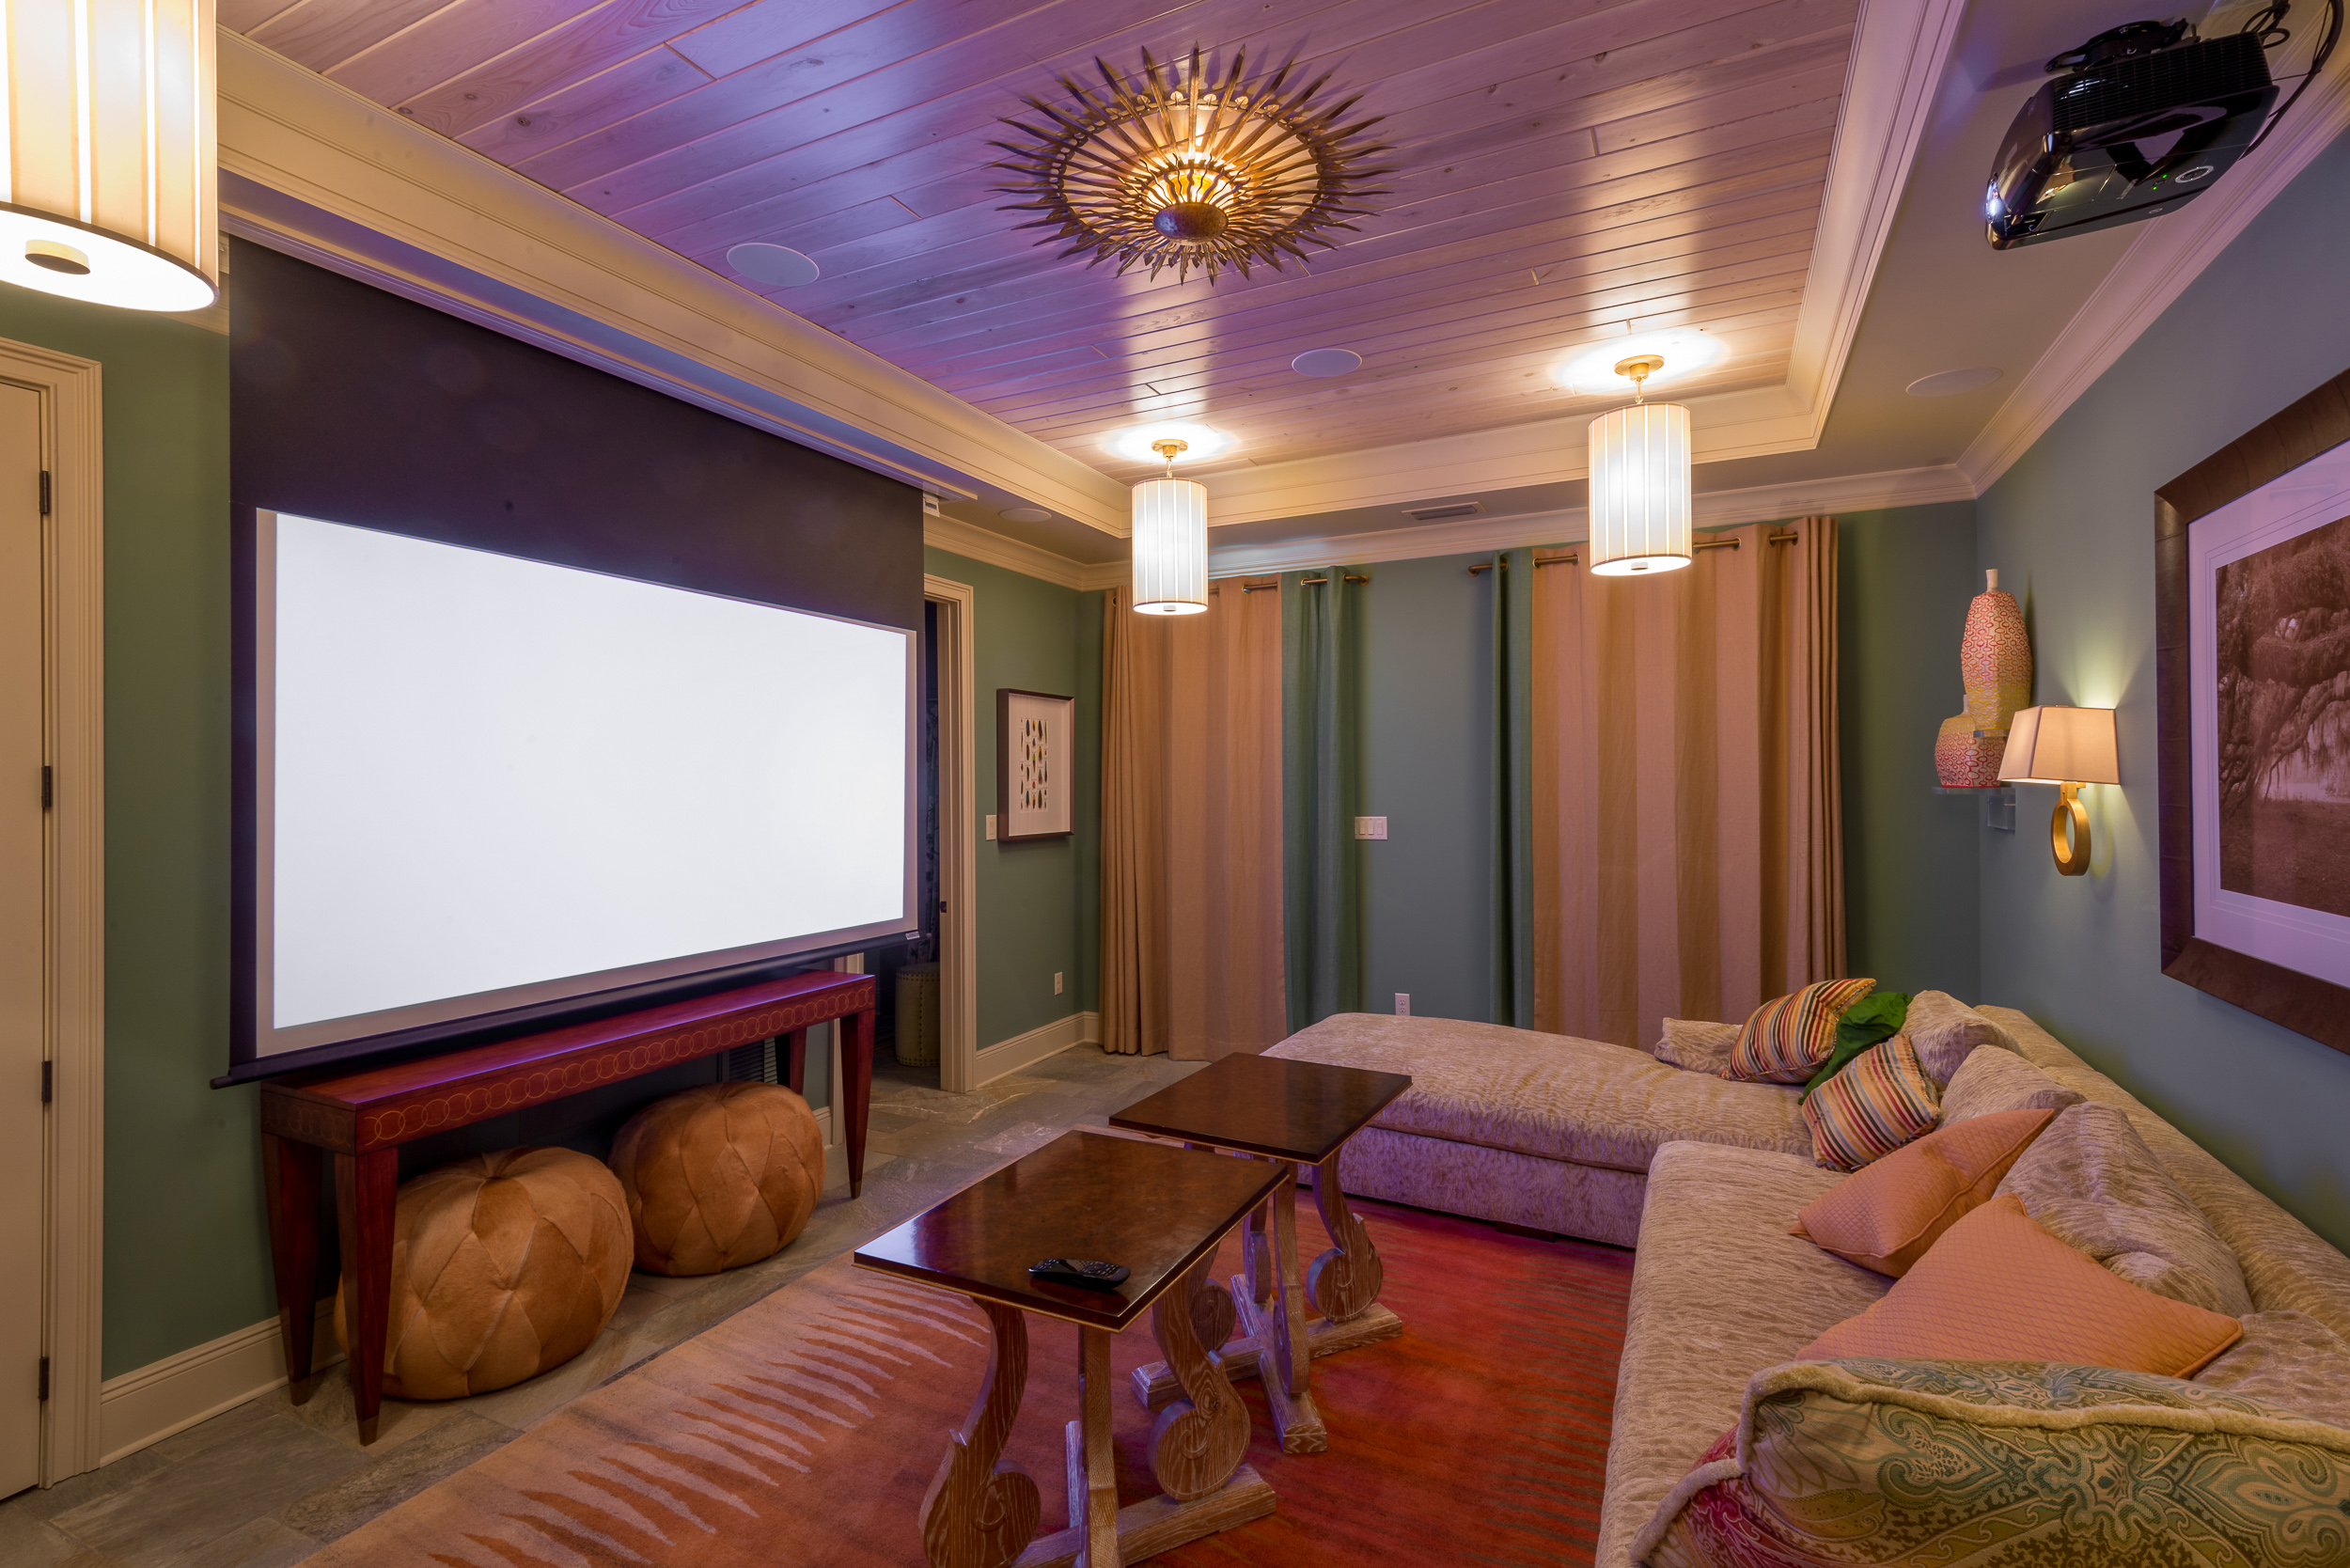 "The piece de résistance of this residence is the designated theater room. The impressive audio/video system remains unheard and out-of-sight until the massive Vutec 103"" motorized film screen drops out of the ceiling.  That's when jaws drop too!  See the video below."